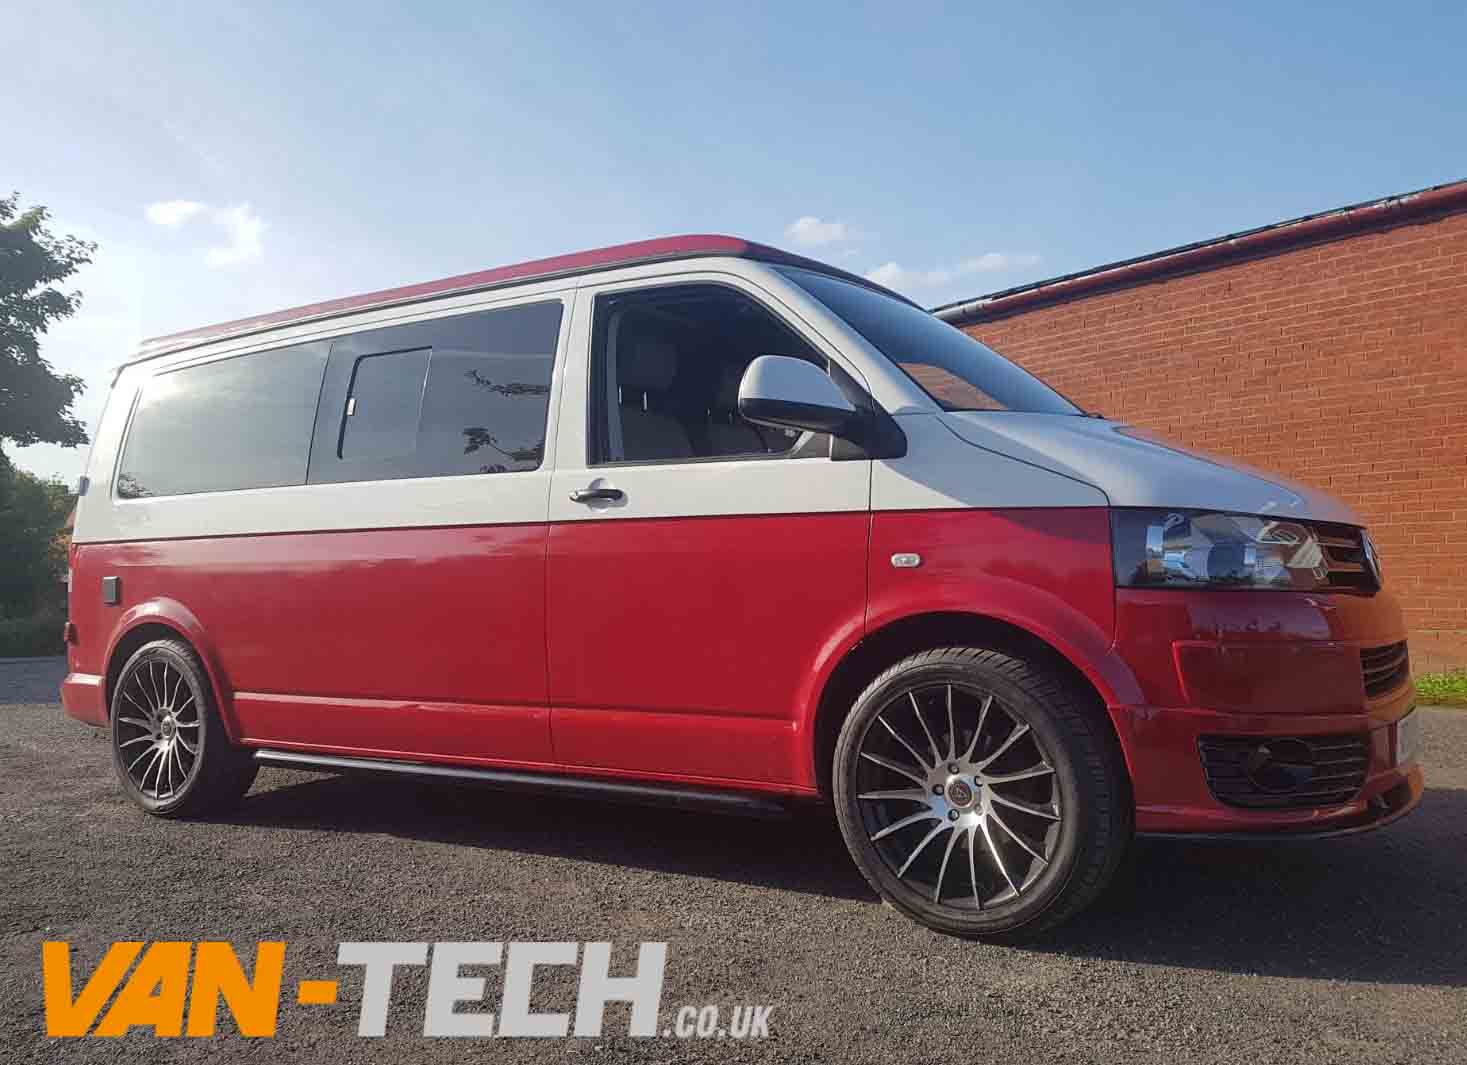 For Sale Vw Transporter T5 1 Camper Van White And Red Two